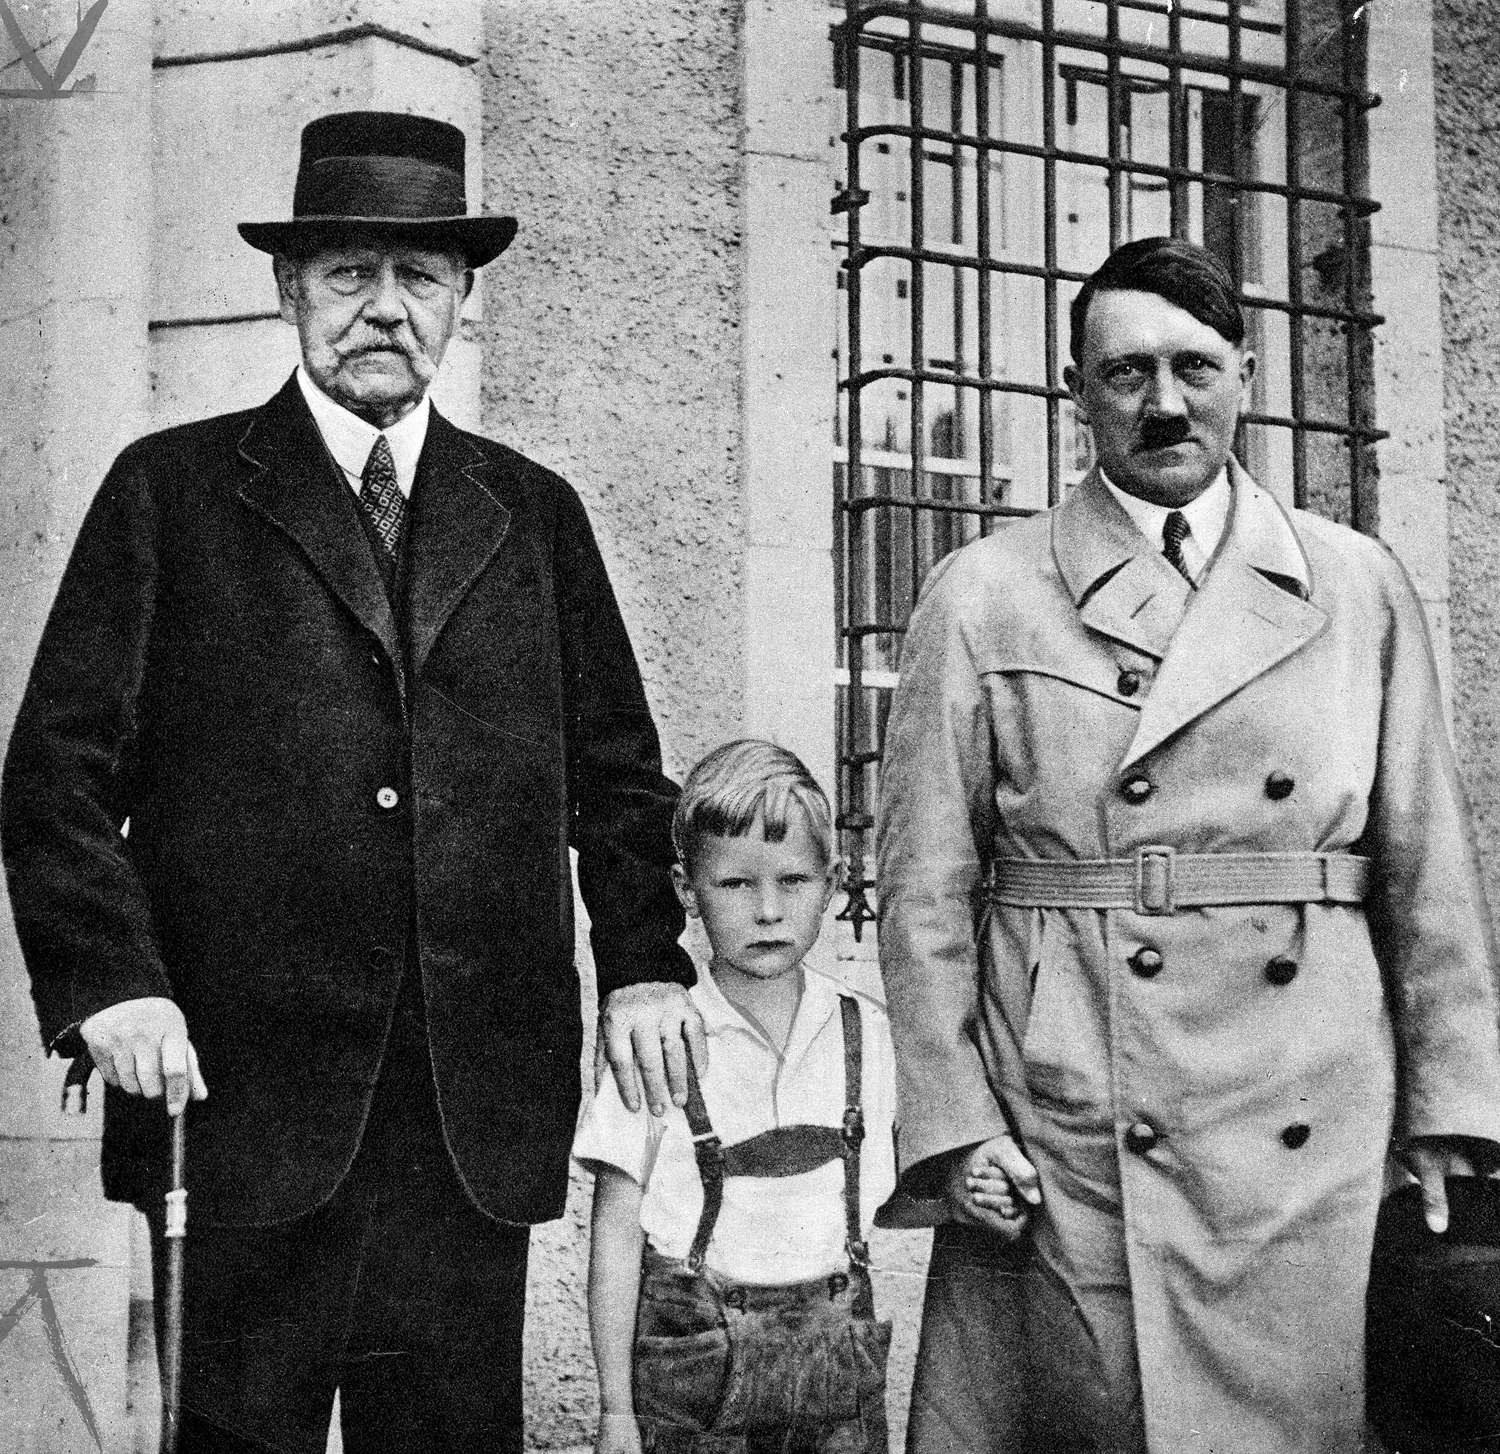 Adolf Hitler visits Paul von Hindenburg and his grandchildren at his residence in Neudeck